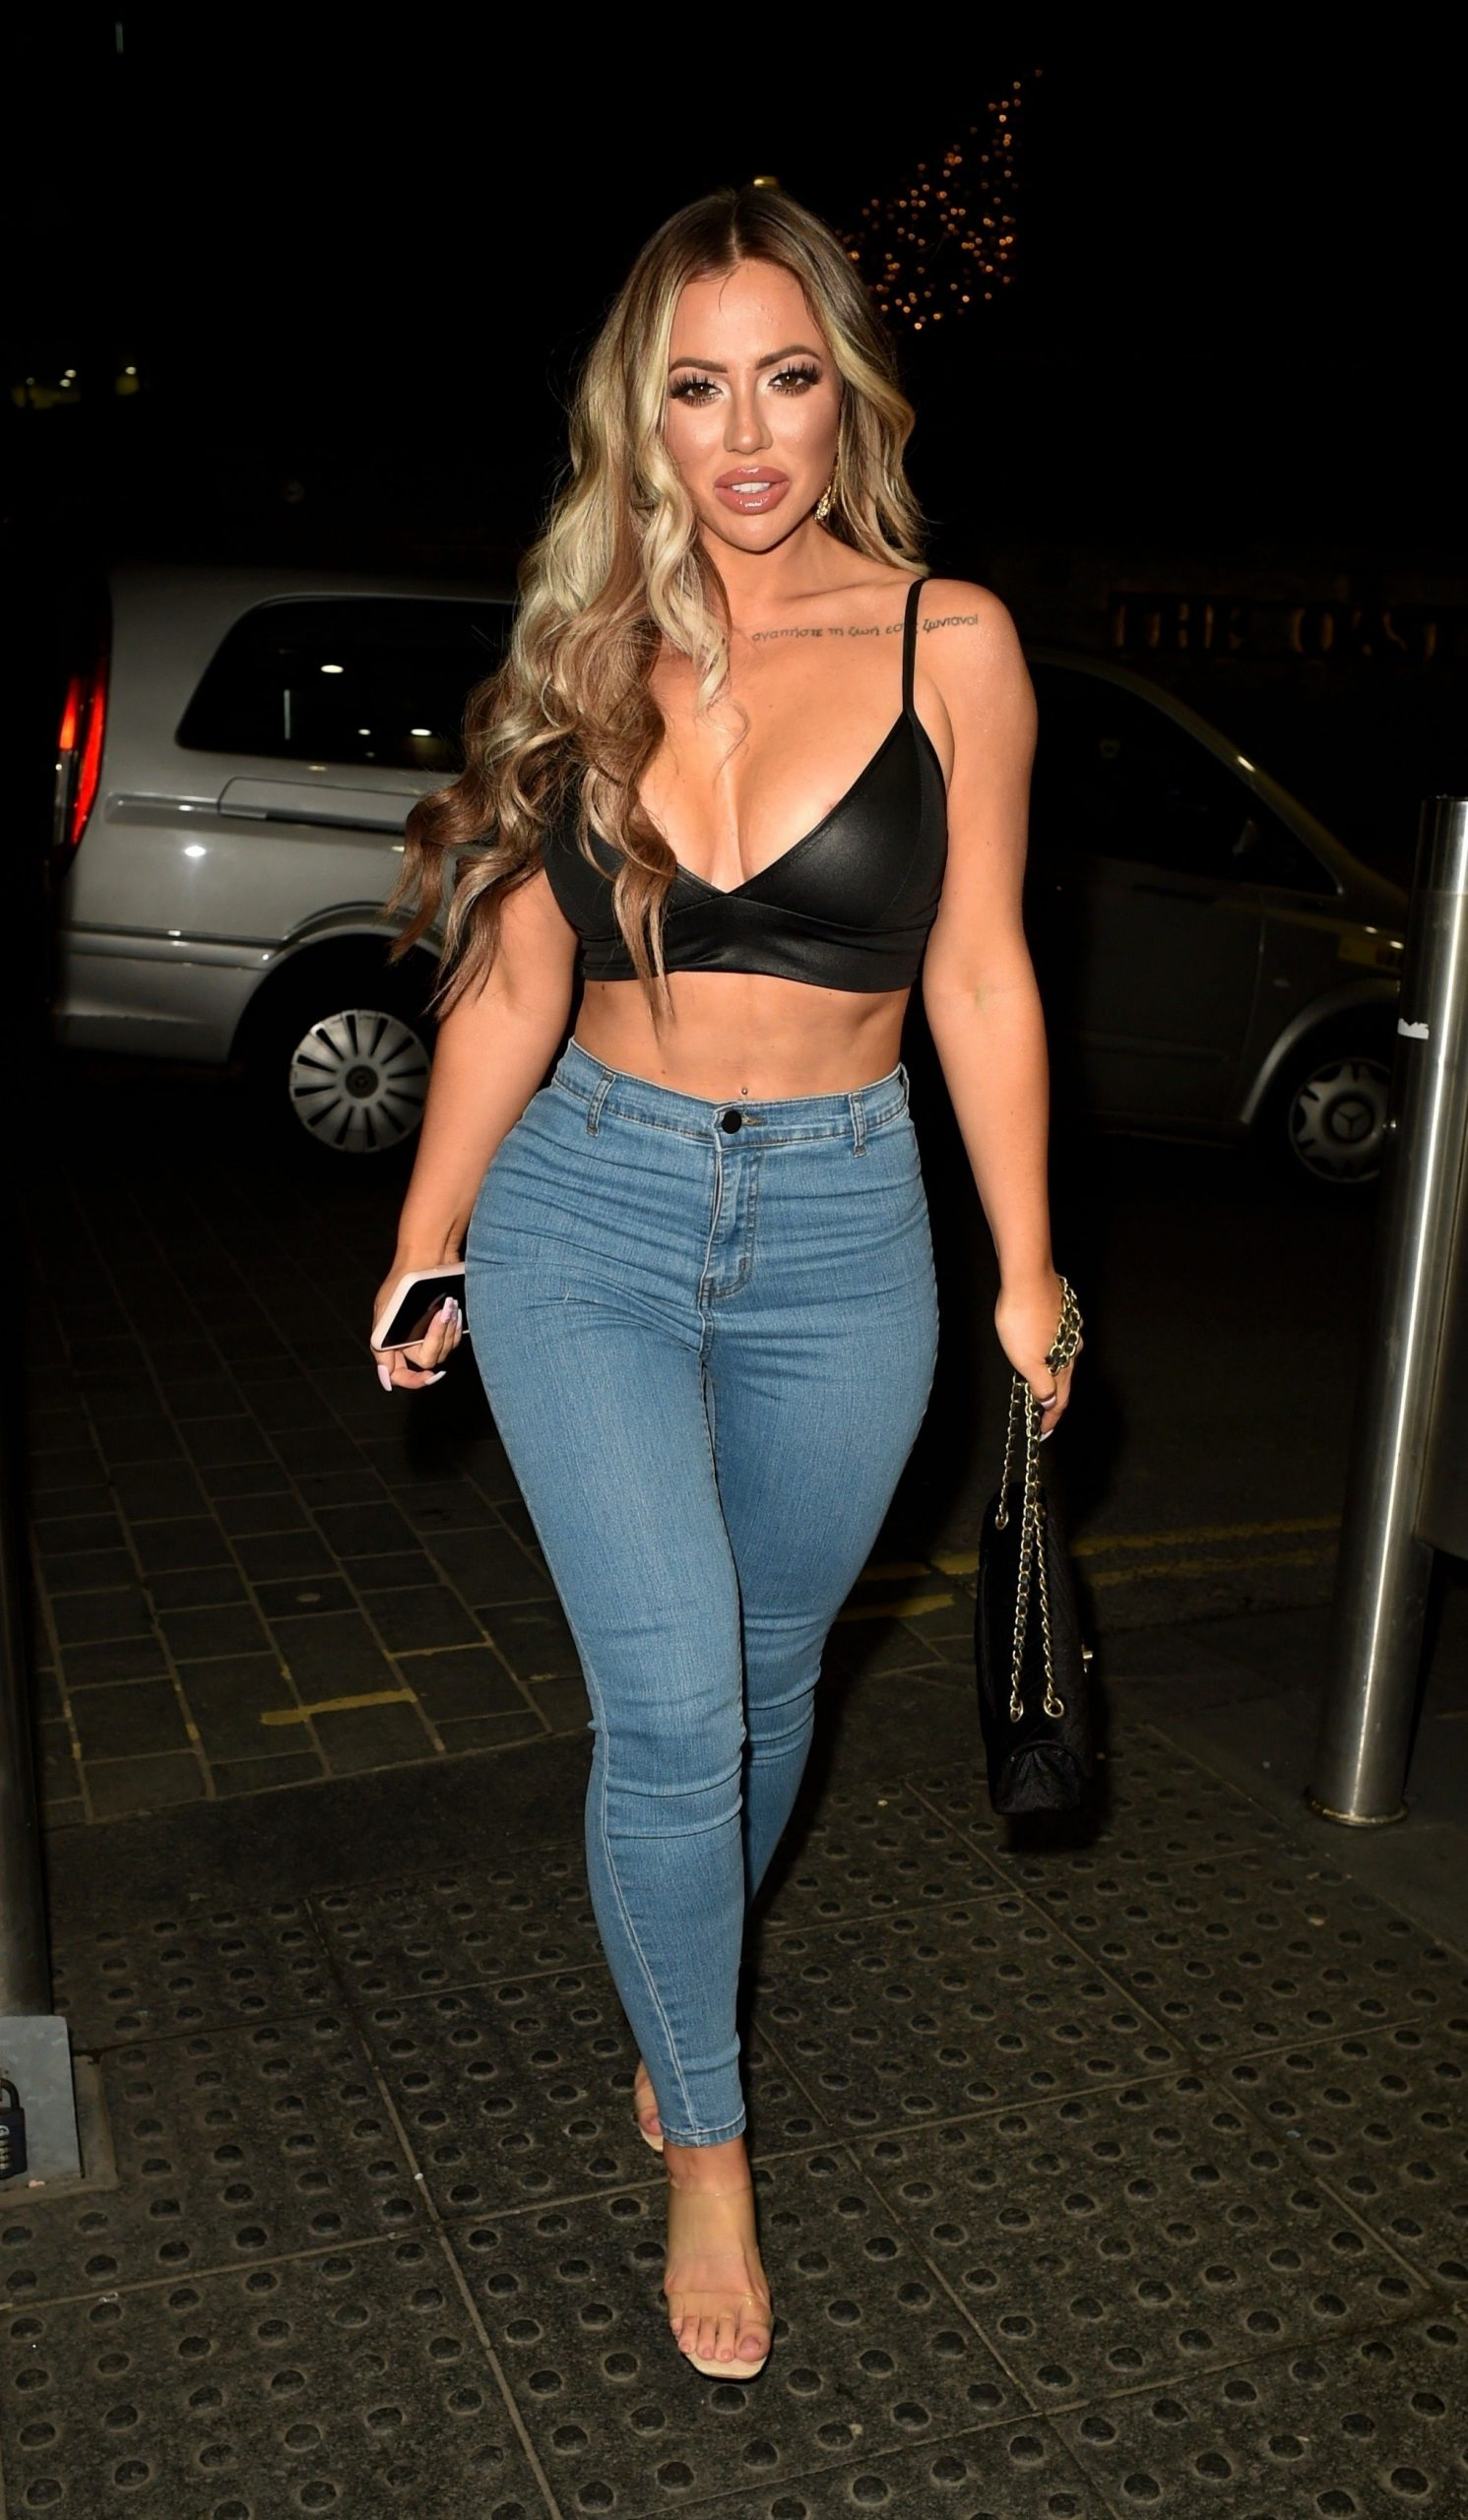 Holly Hagan Shows Off Her Sexy Figure On A Girls Night Out 0010